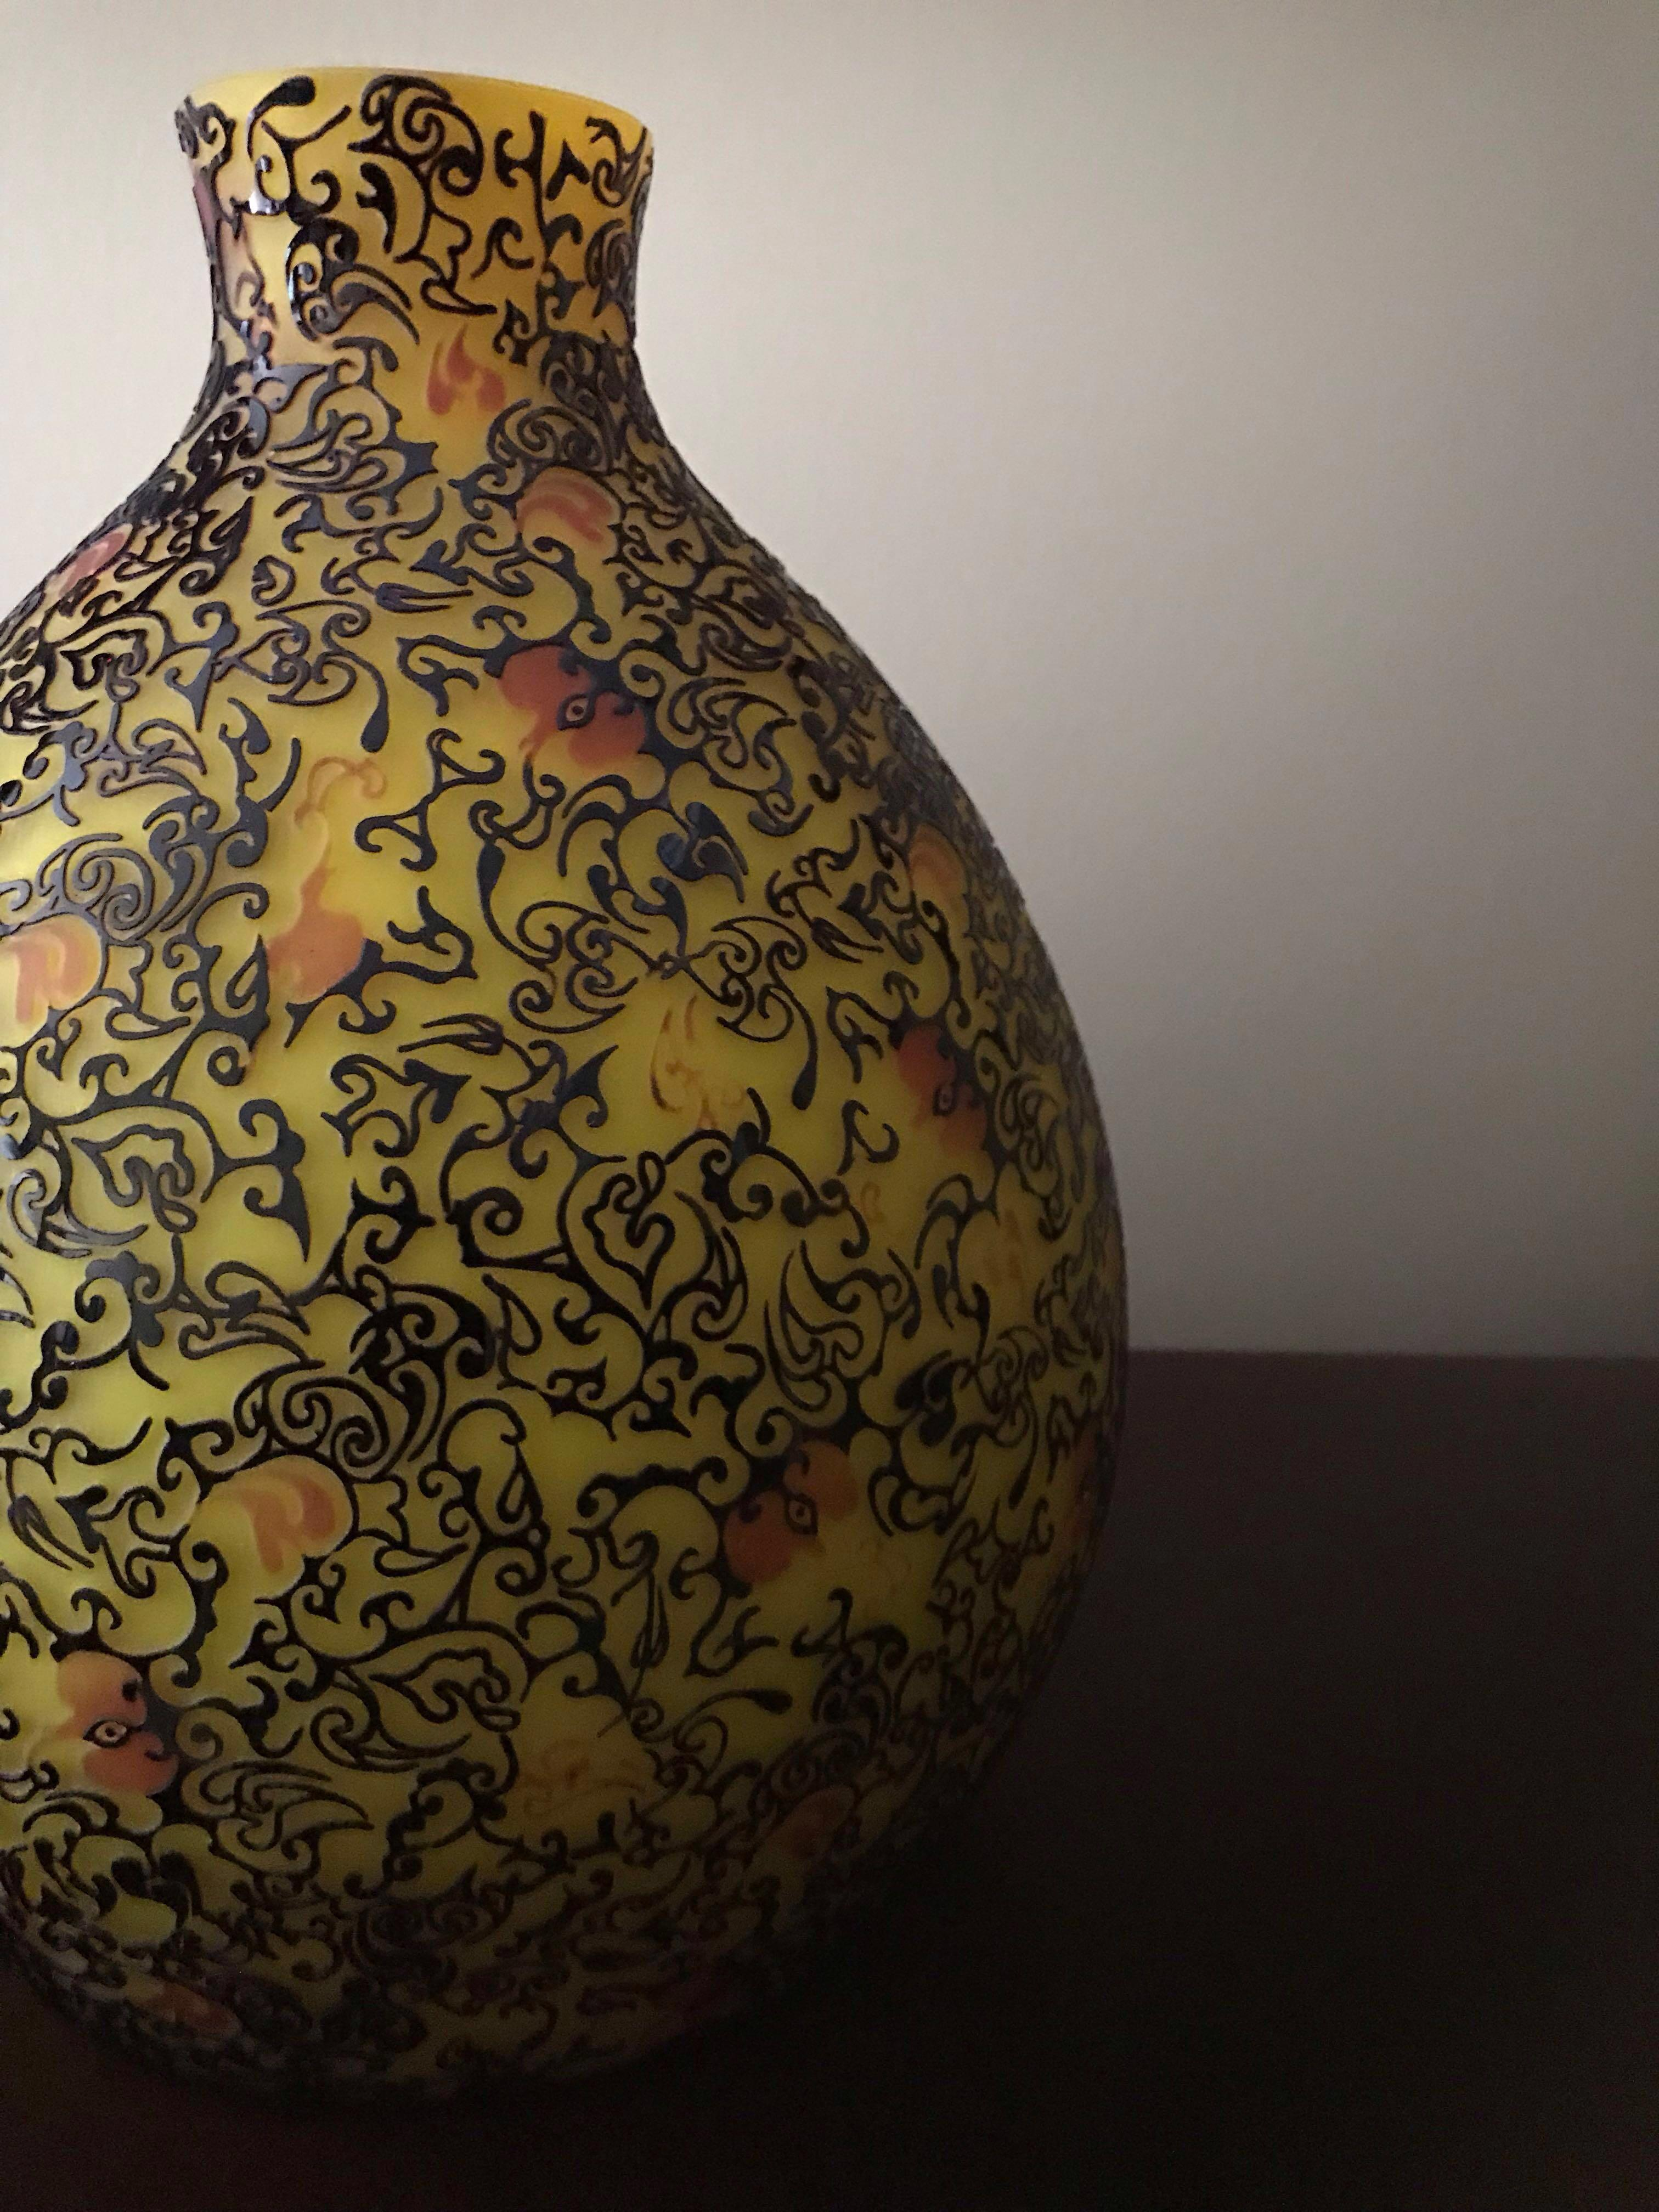 Antique vintage collectibles porcelain collection antiques Jewelry Chinese vase Everything Else Others Tops Arts & Prints Tables & Chairs Vase Antiques